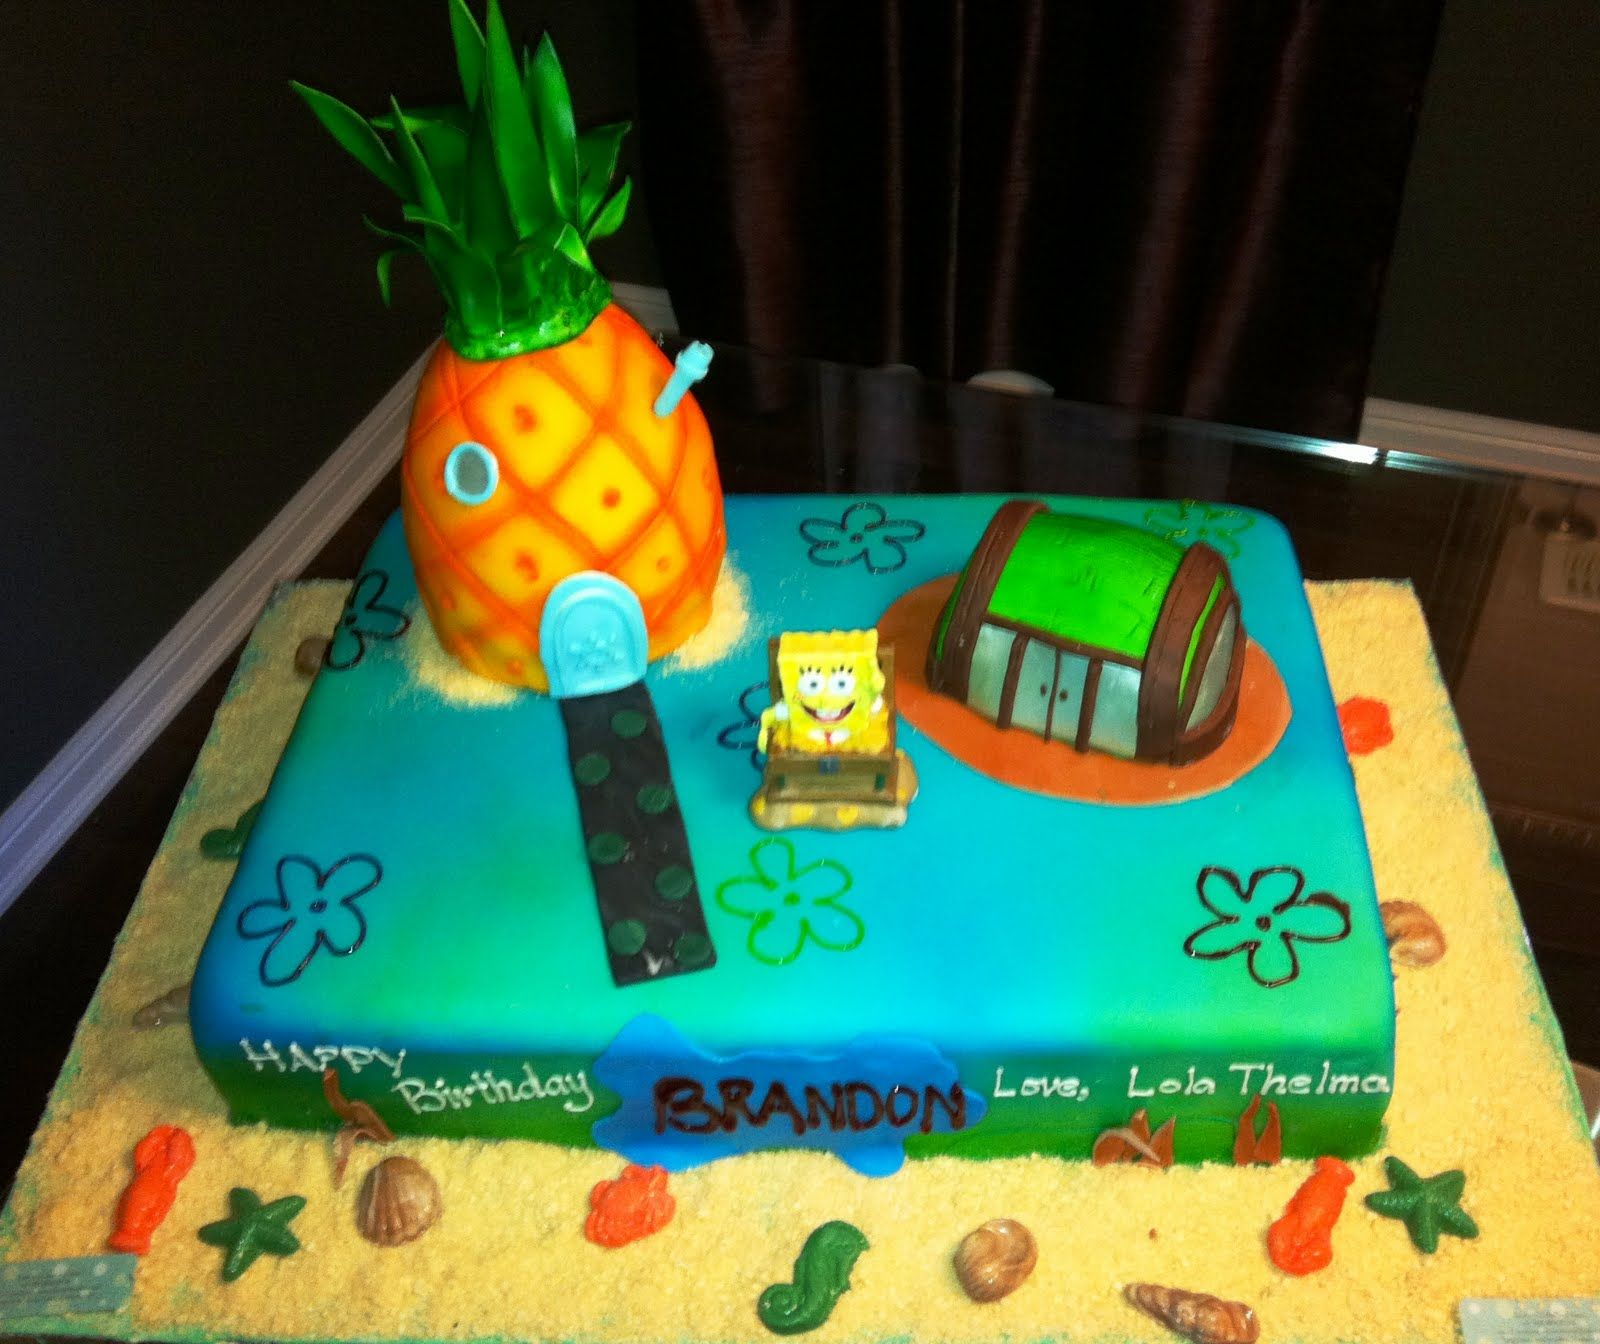 spongebob cakes Wedding Cakes and More Spongebob Cake